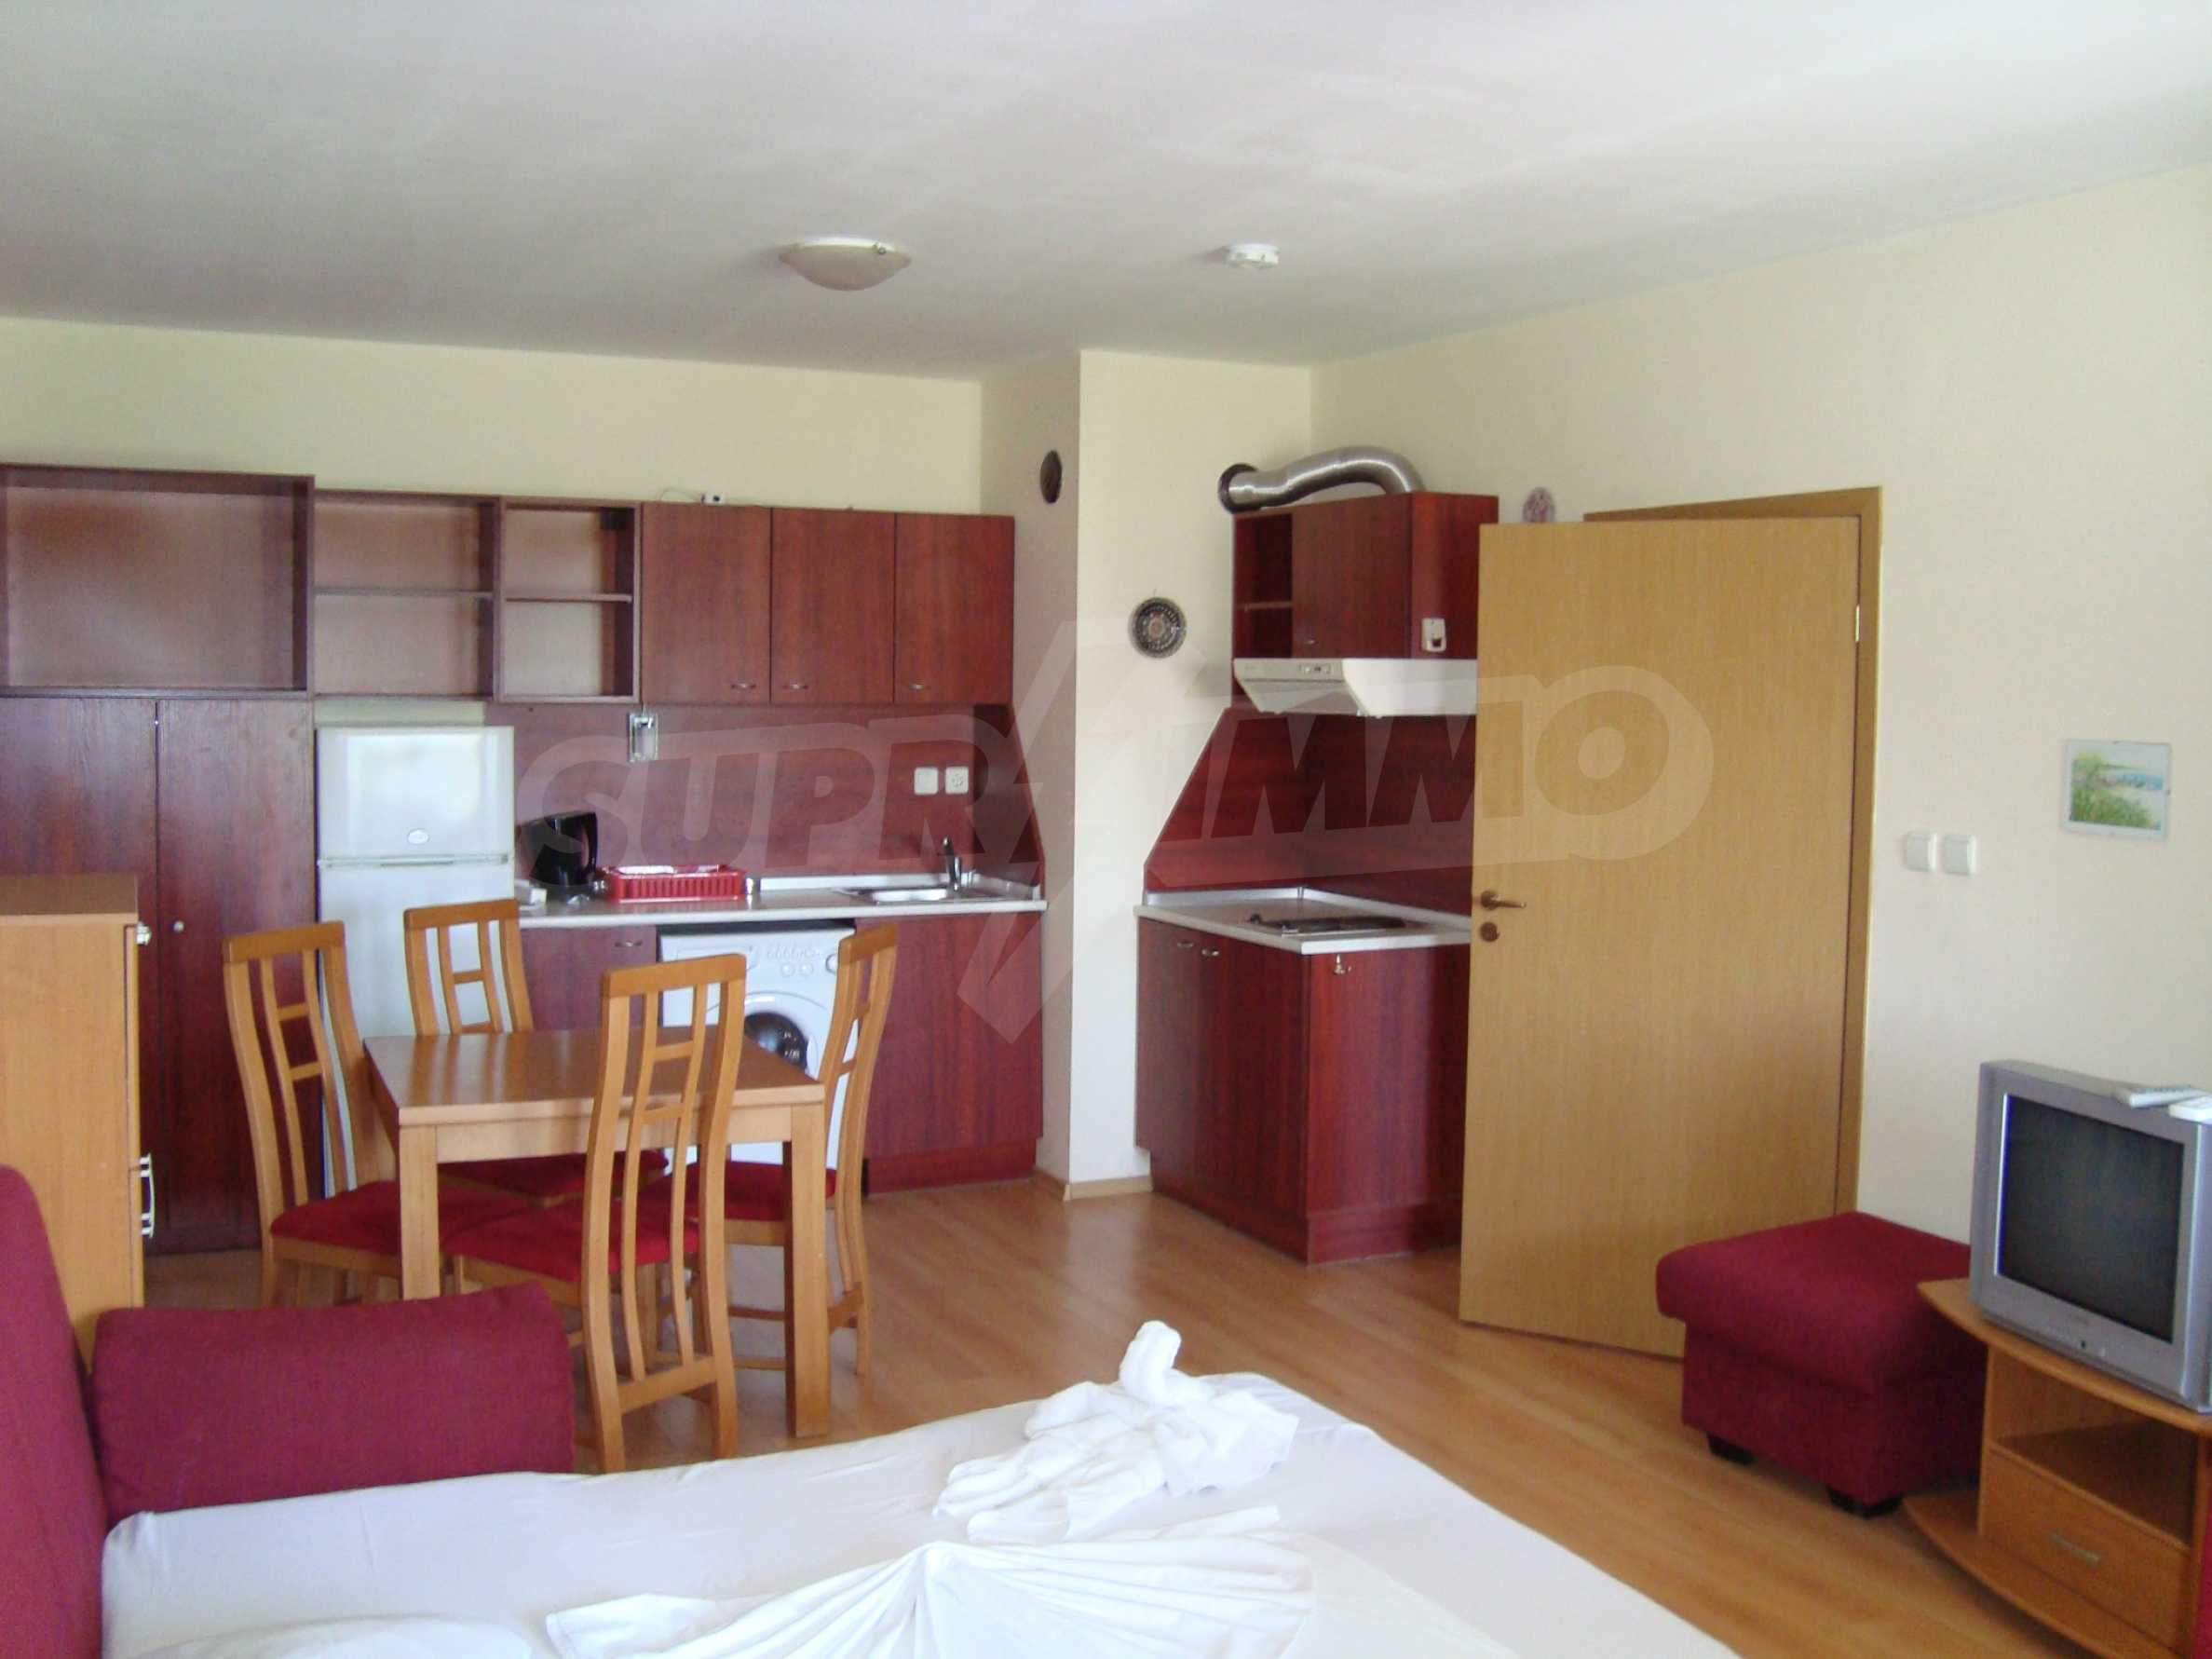 One-bedroom apartment in Prestige City 1 complex in Sunny beach 1